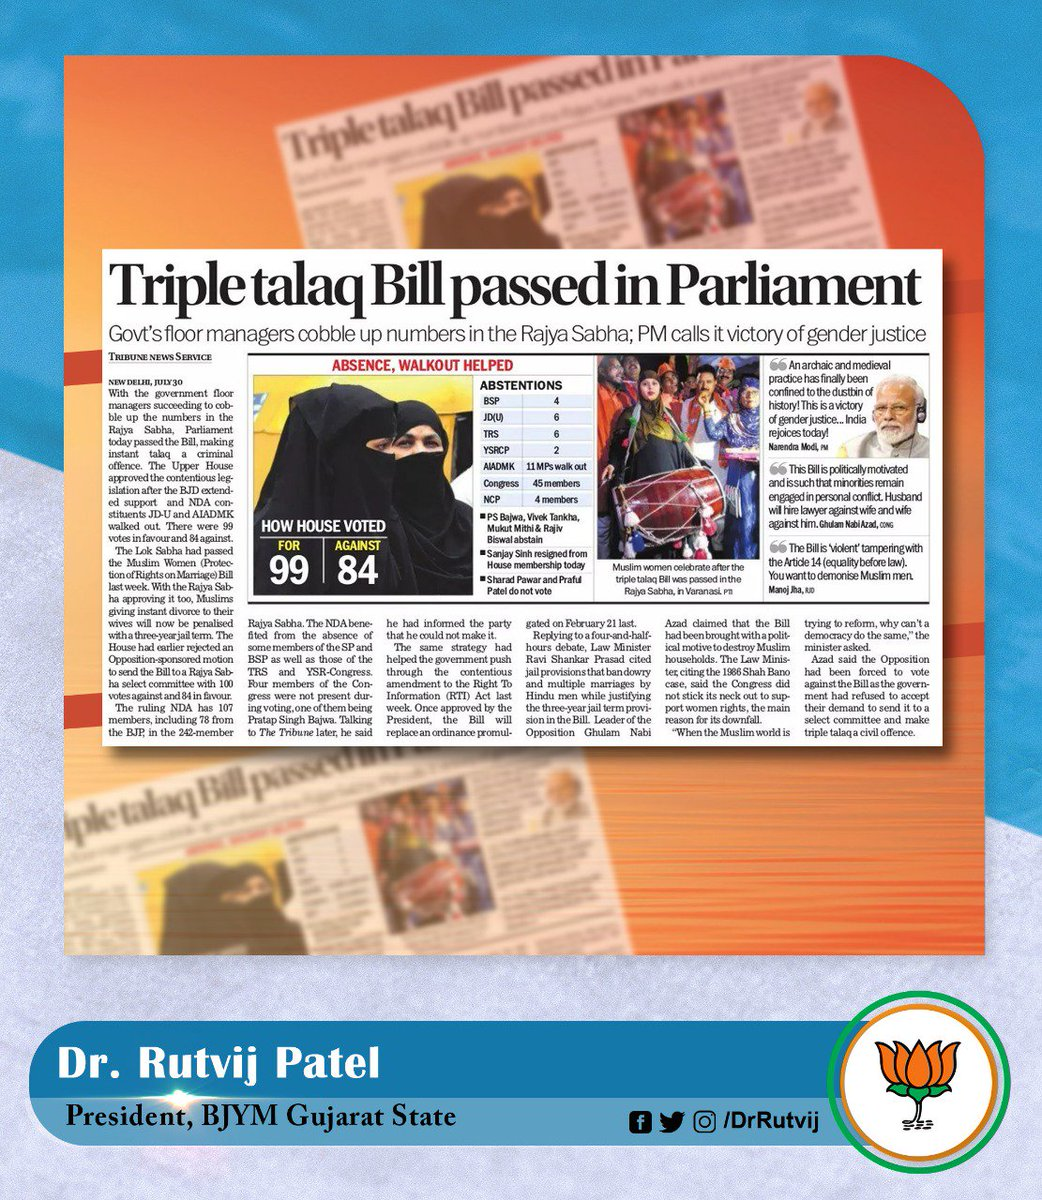 An age old practice of #TripleTalaqBill has finally come to